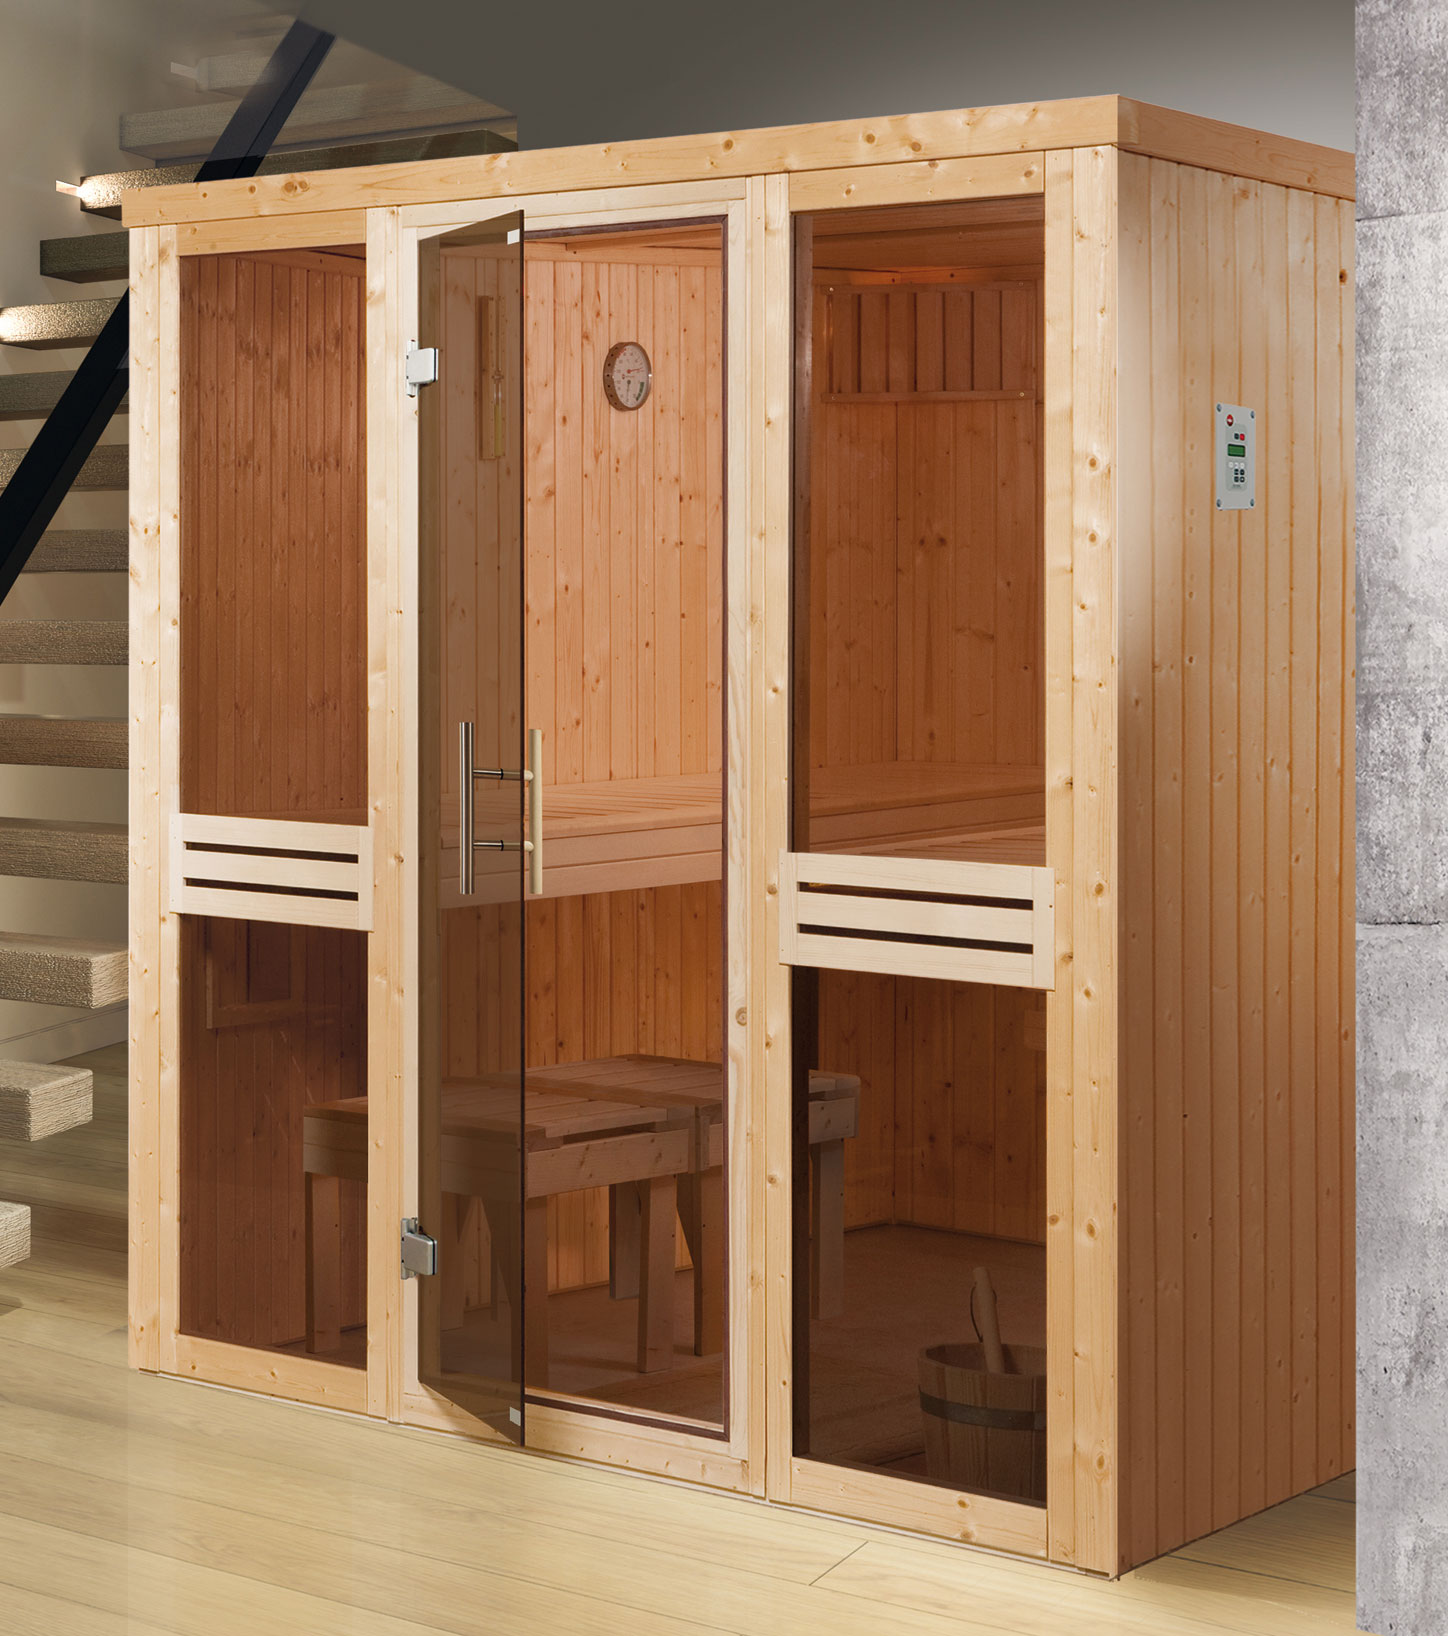 weka sauna 506 gt gr 3 68mm ohne ofen mit glast r bei. Black Bedroom Furniture Sets. Home Design Ideas